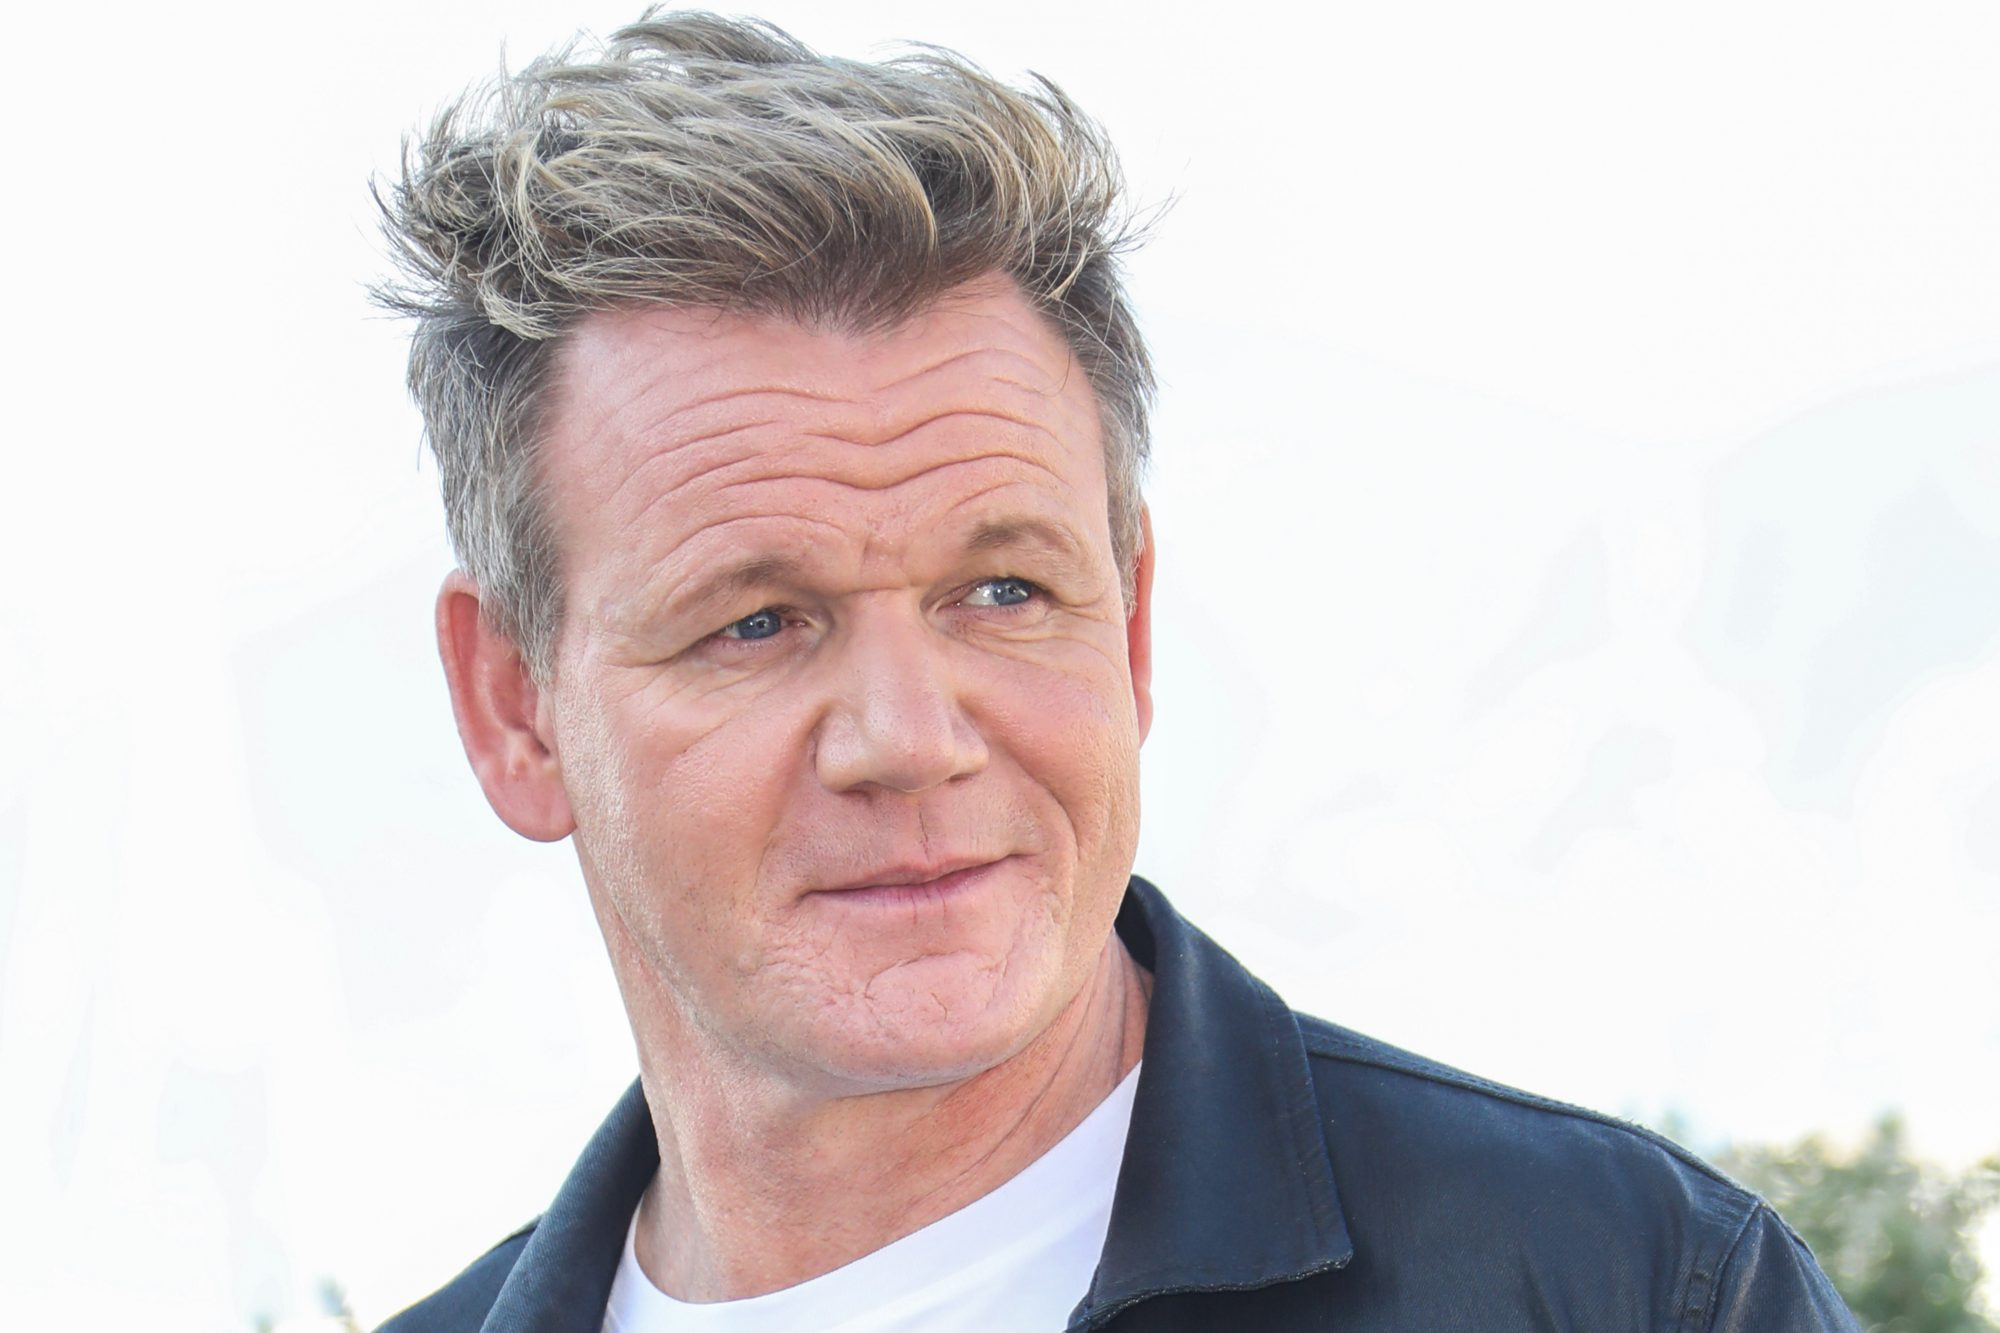 Gordon Ramsay's '24 Hours to Hell and Back' Will Get a Second Season